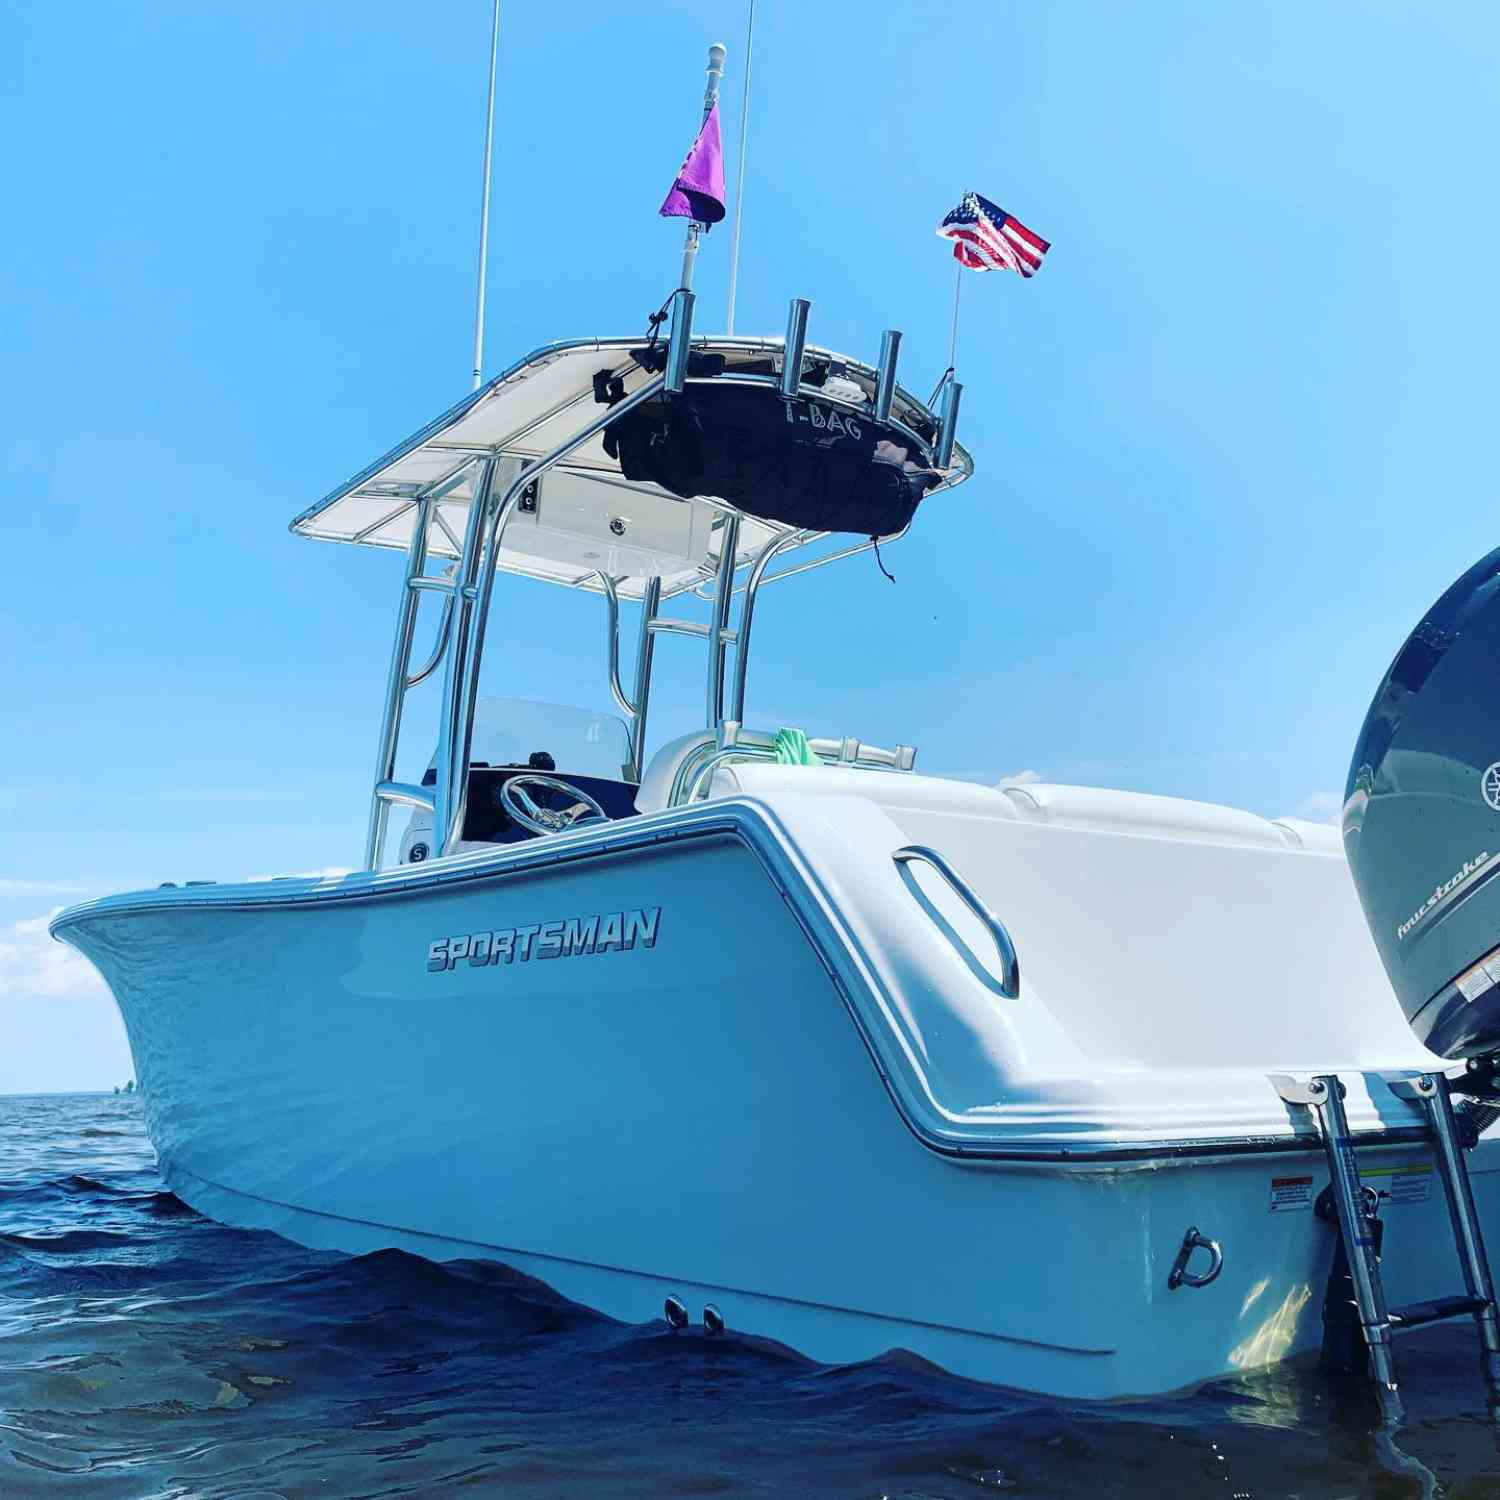 Title: Sunday funday - On board their Sportsman Heritage 231 Center Console - Location: Albemarle Sound, NC. Participating in the Photo Contest #SportsmanAugust2019